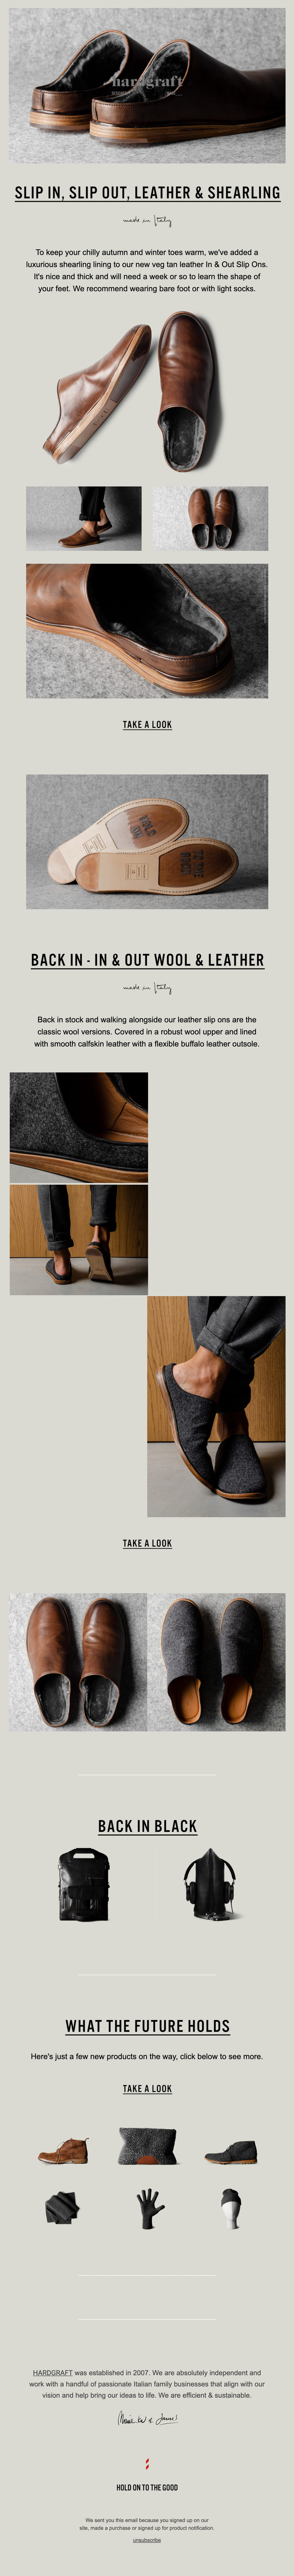 [NEW] Leather Slip Ons [BACK IN] Wool Slip Ons Email Screenshot